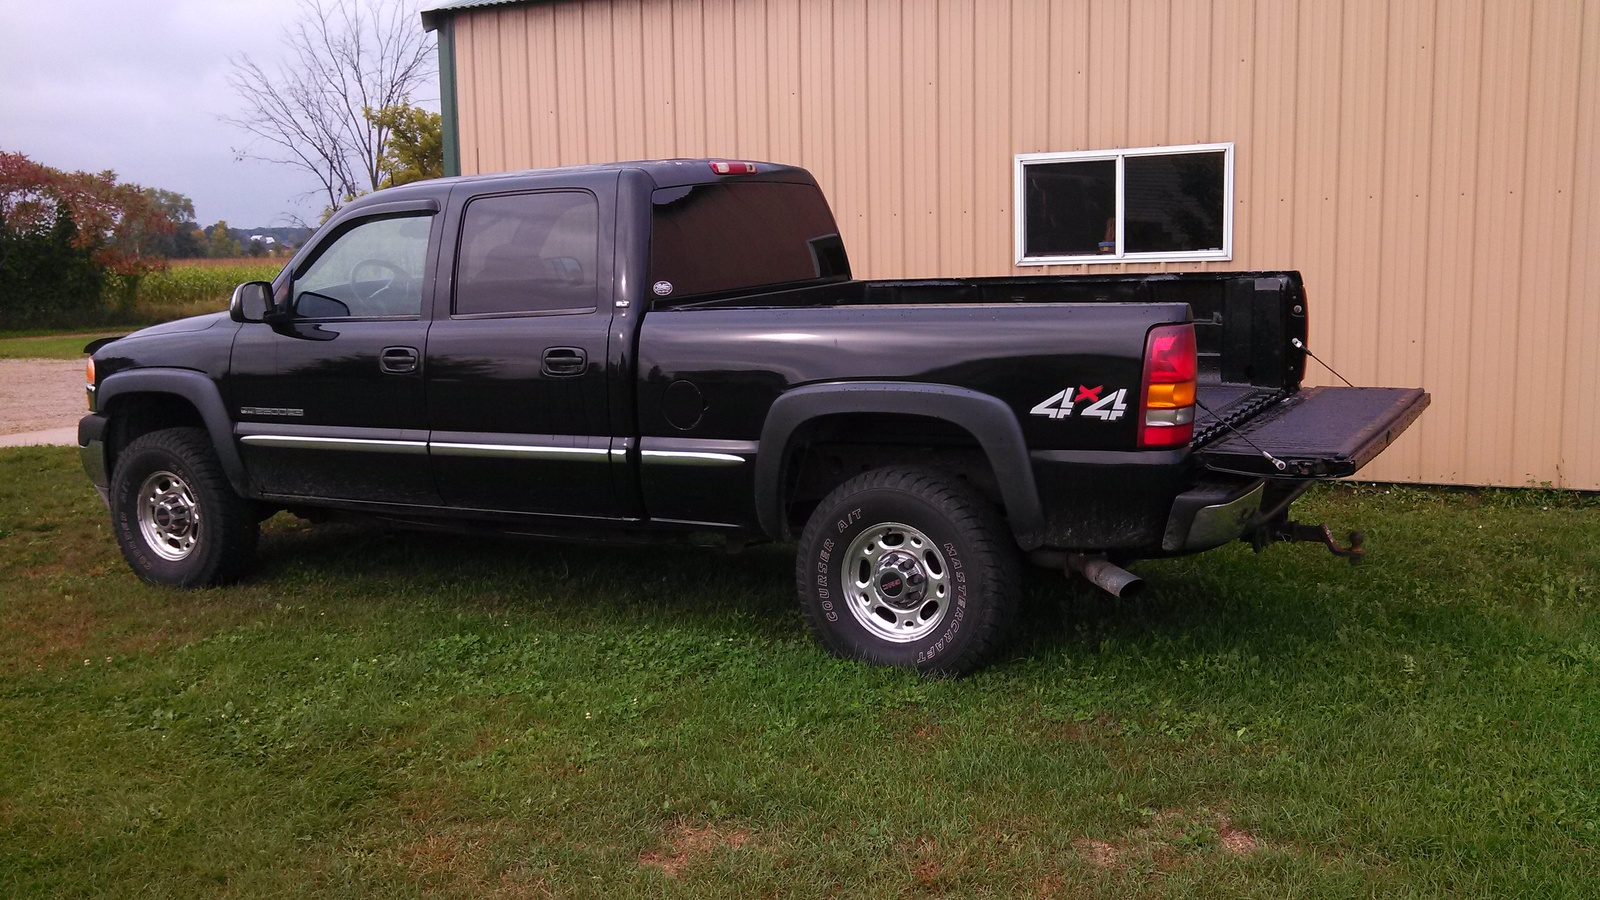 5009 Gmc Sierra 2500 1998 8 as well 2019 Gmc Sierra New Look Diesel Option And Bunch Trick New Features together with 2019 Gmc Sierra 1500 moreover 5JY FS Detail likewise STD18 FS Detail. on gmc sierra 2500